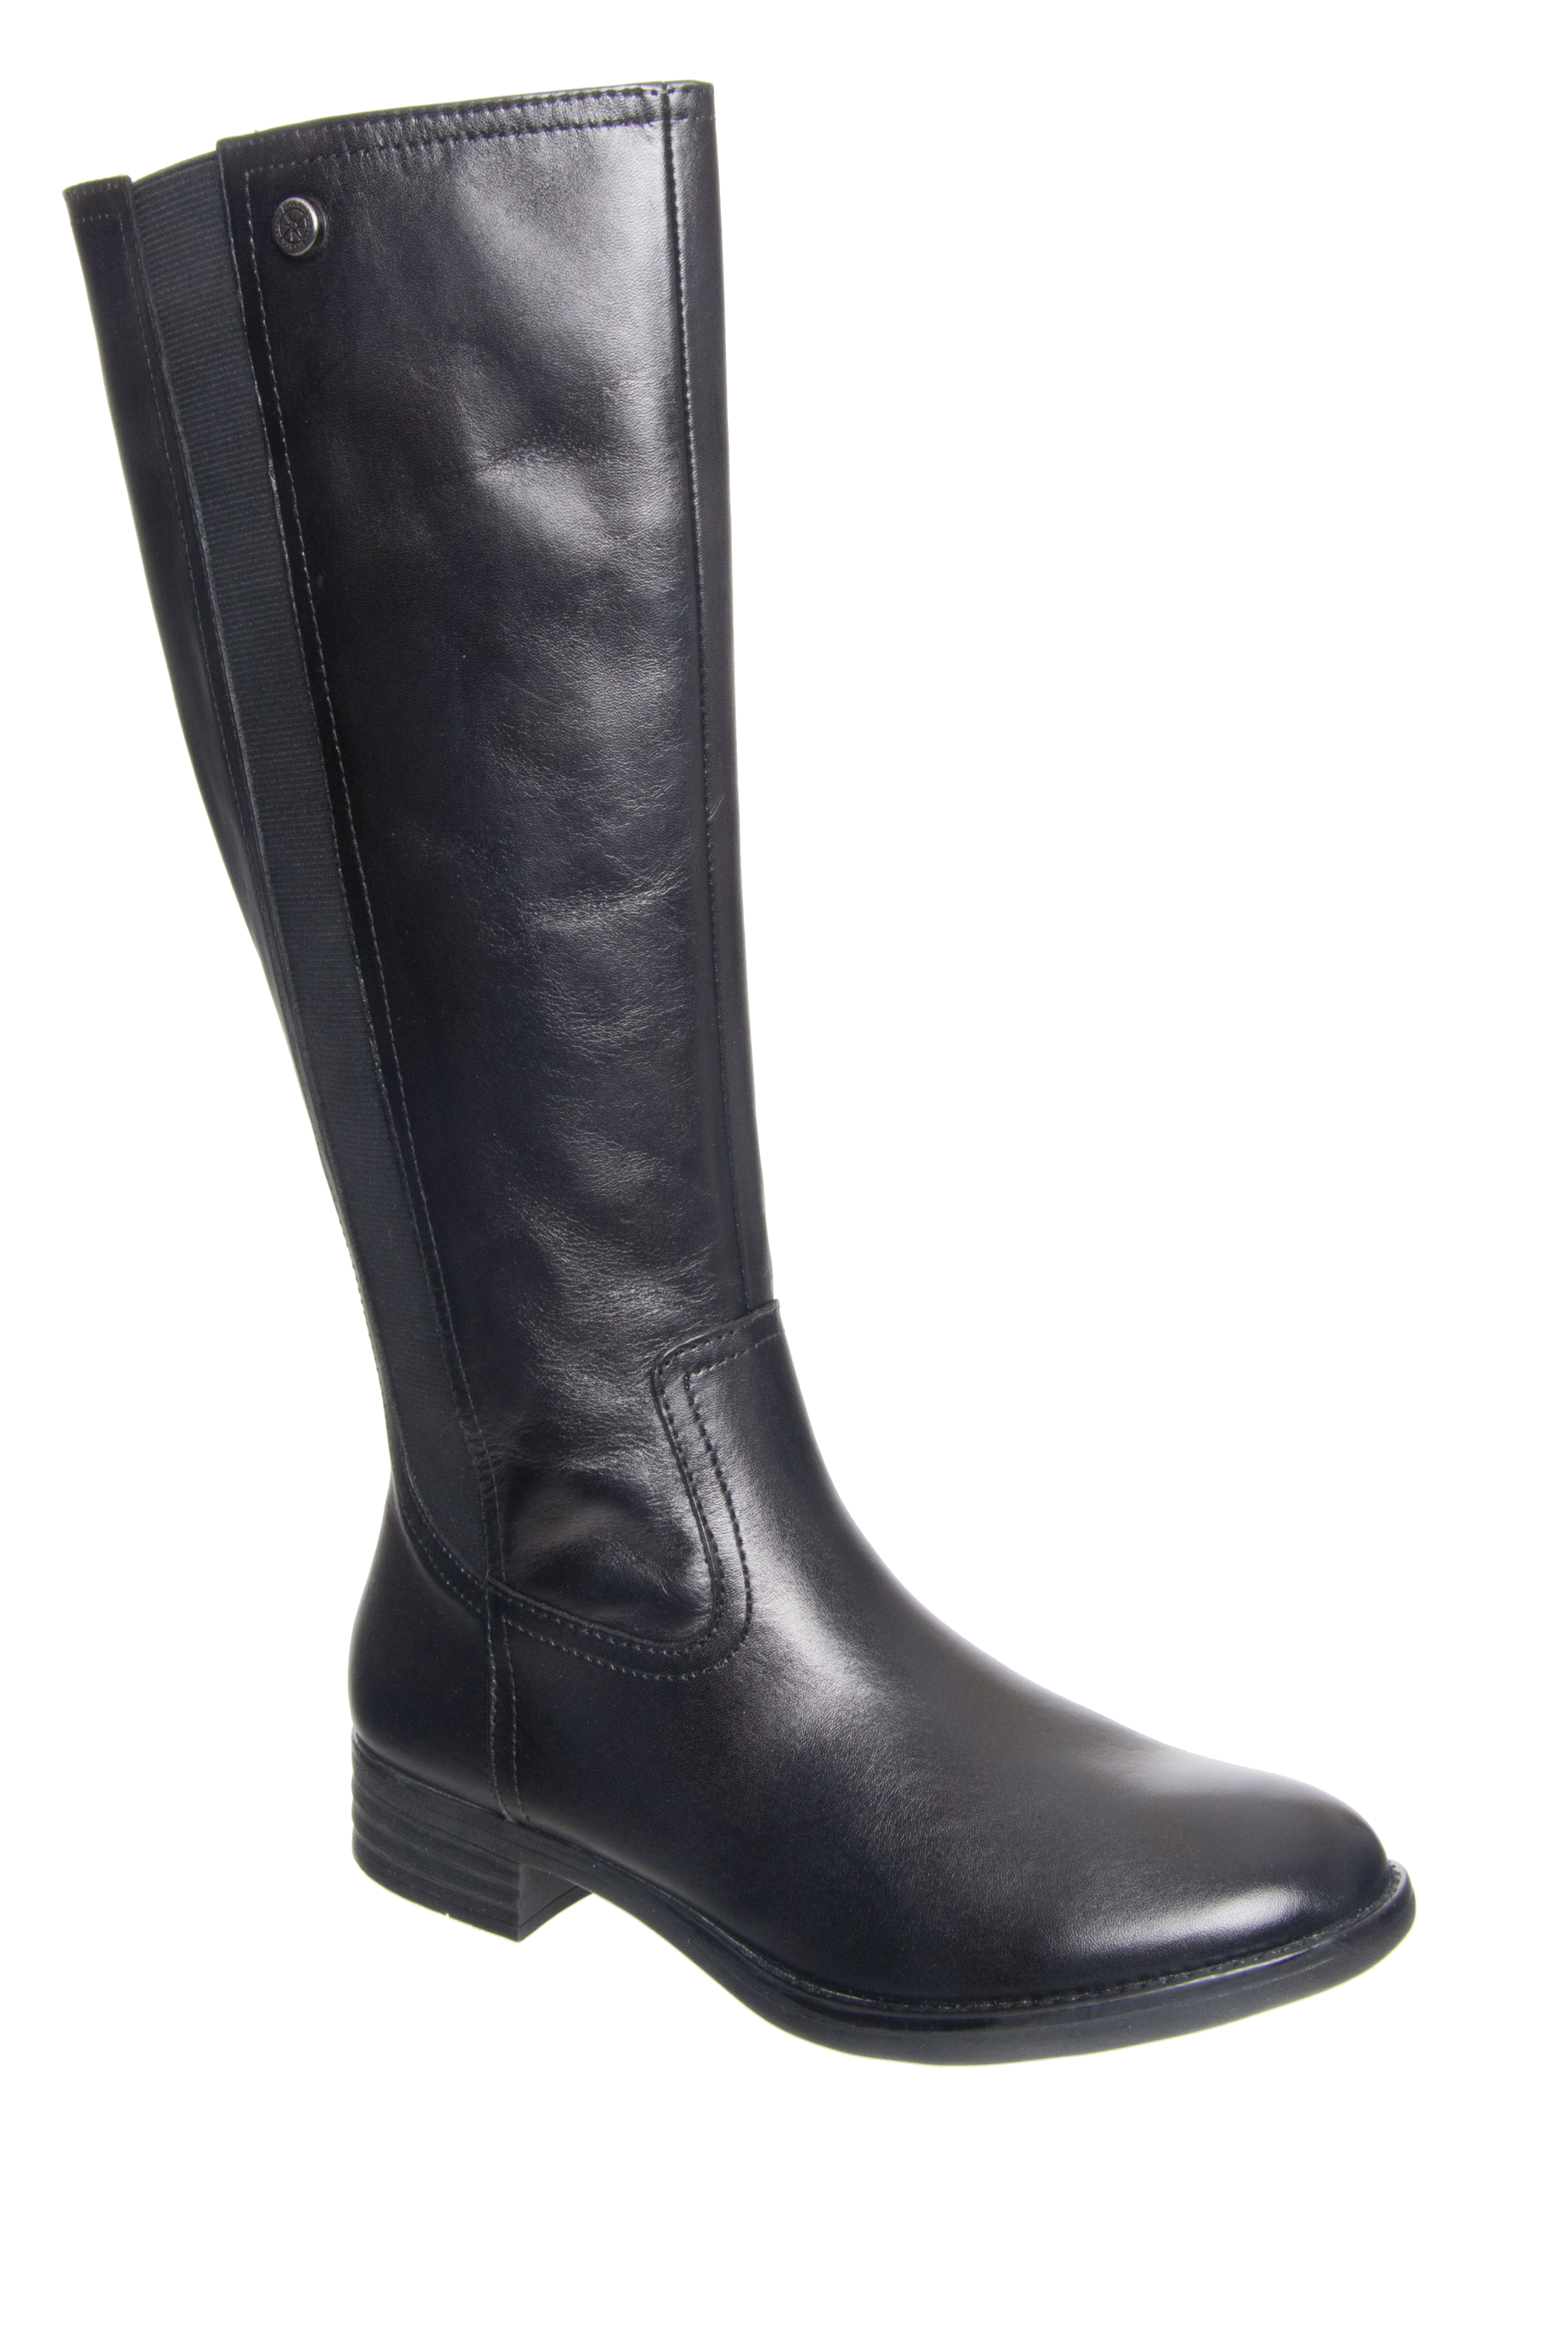 Bussola Tyra Mid Calf Boots - Black